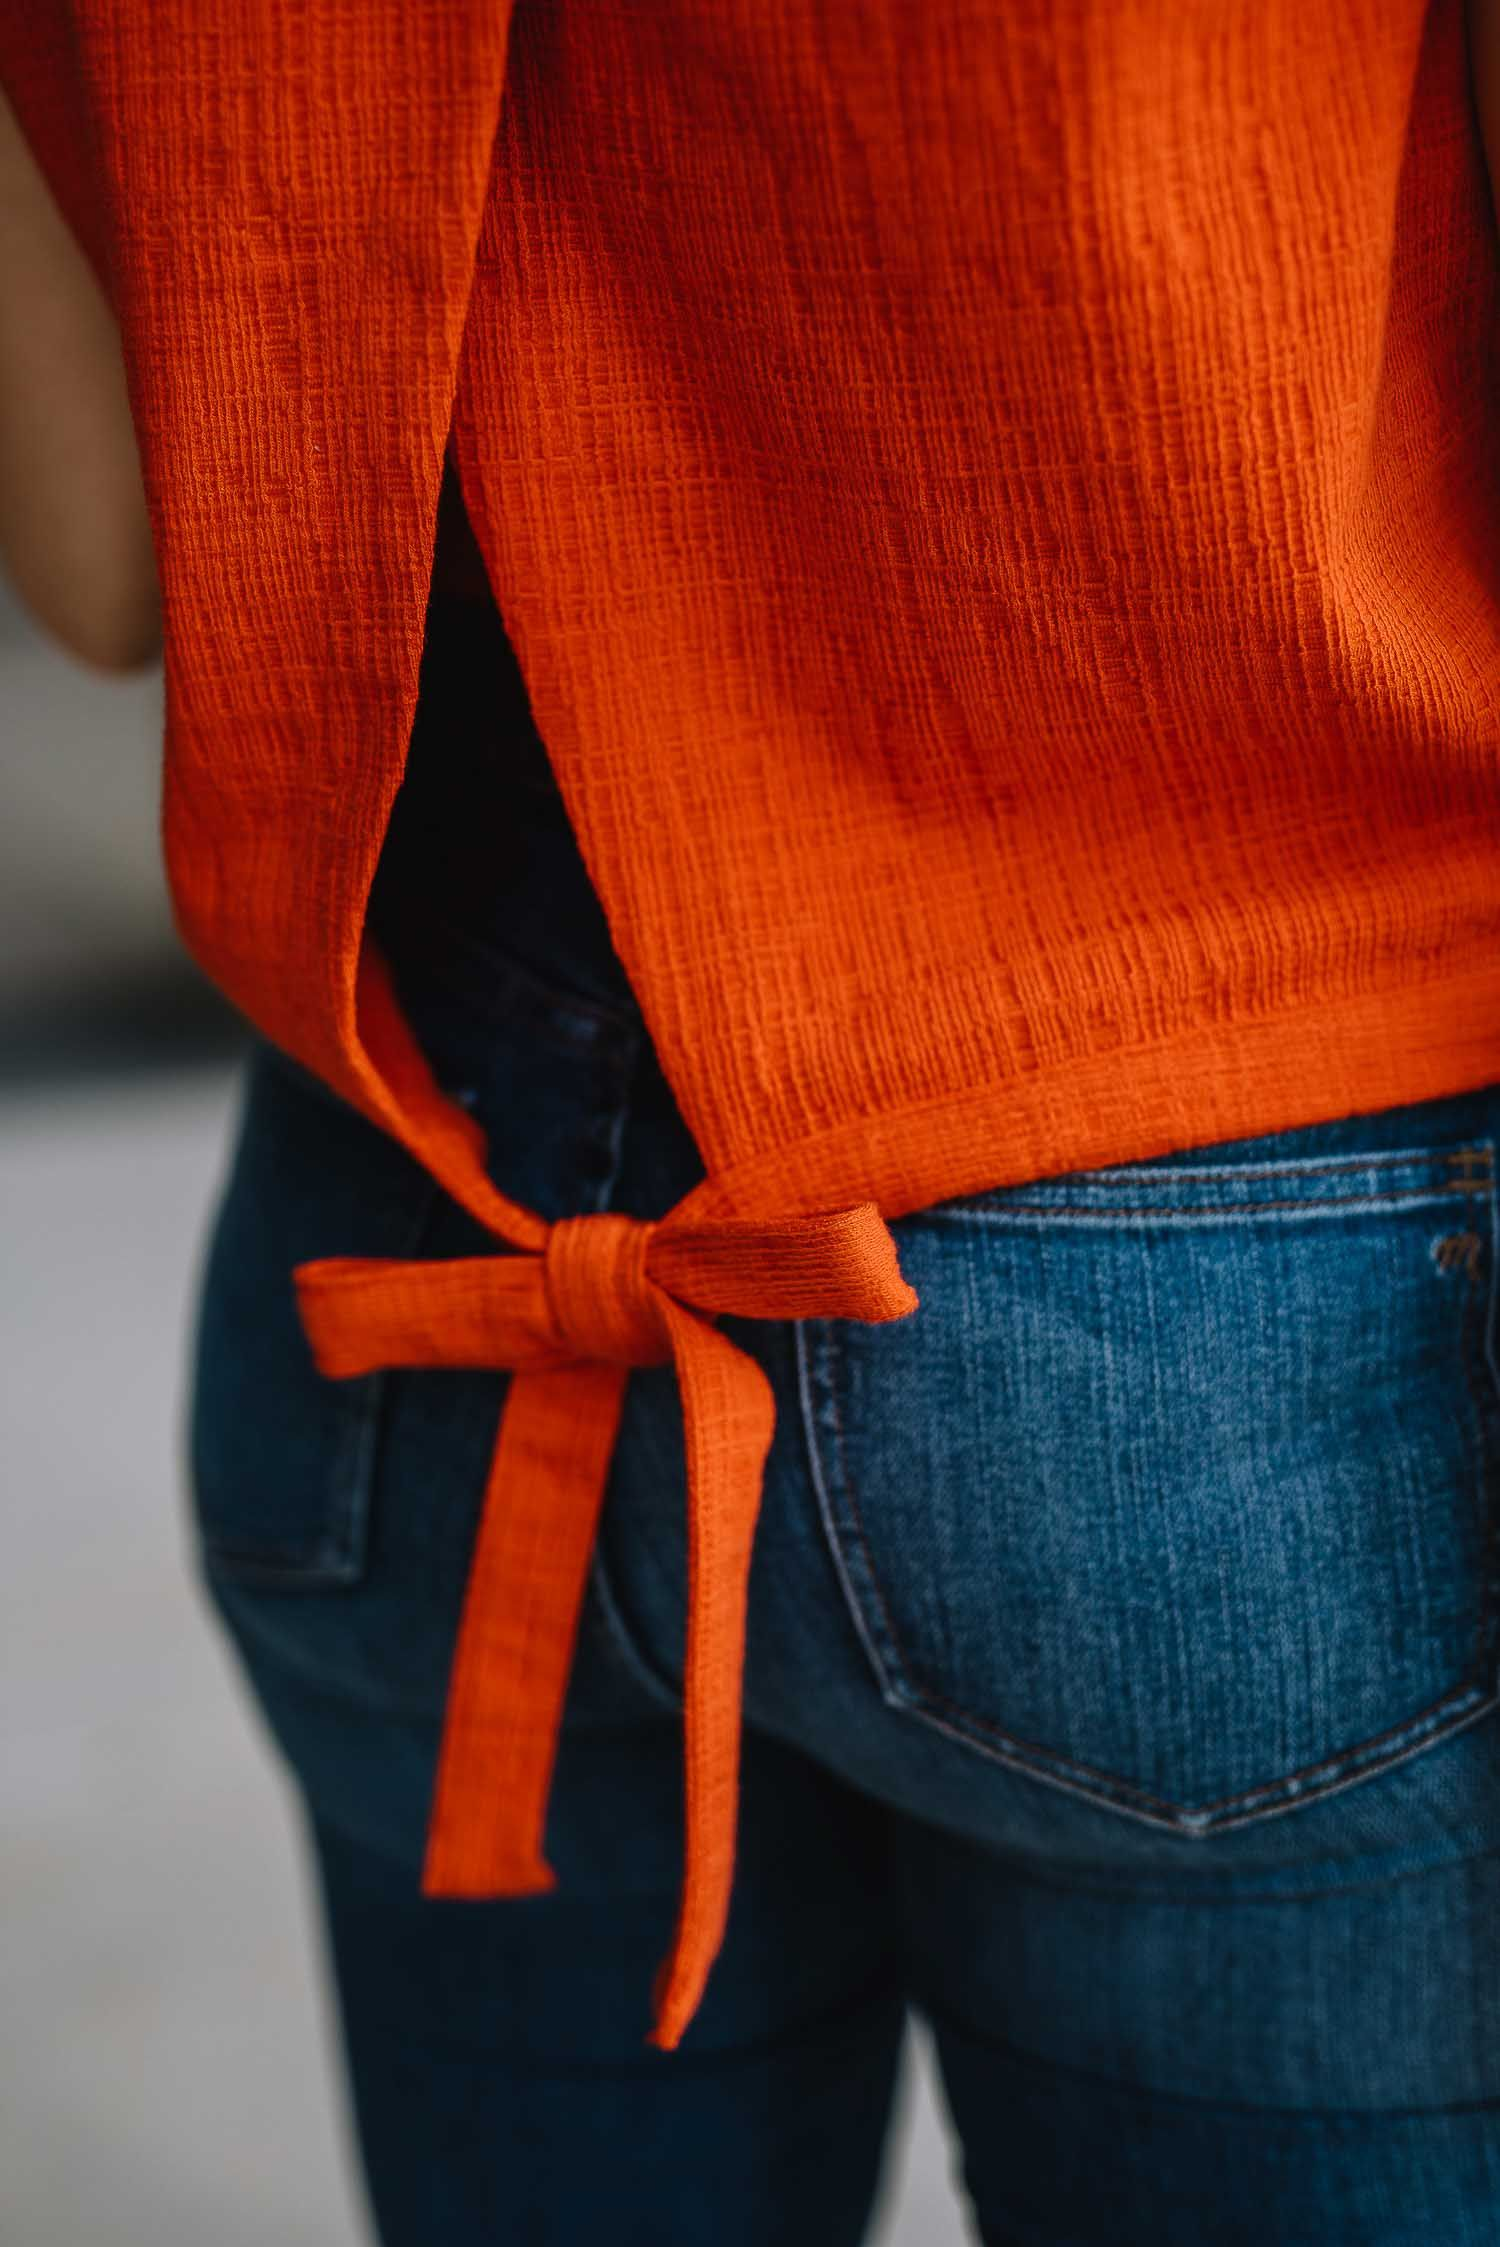 The Bow Back Top That's Making A Come Back | My Style Vita